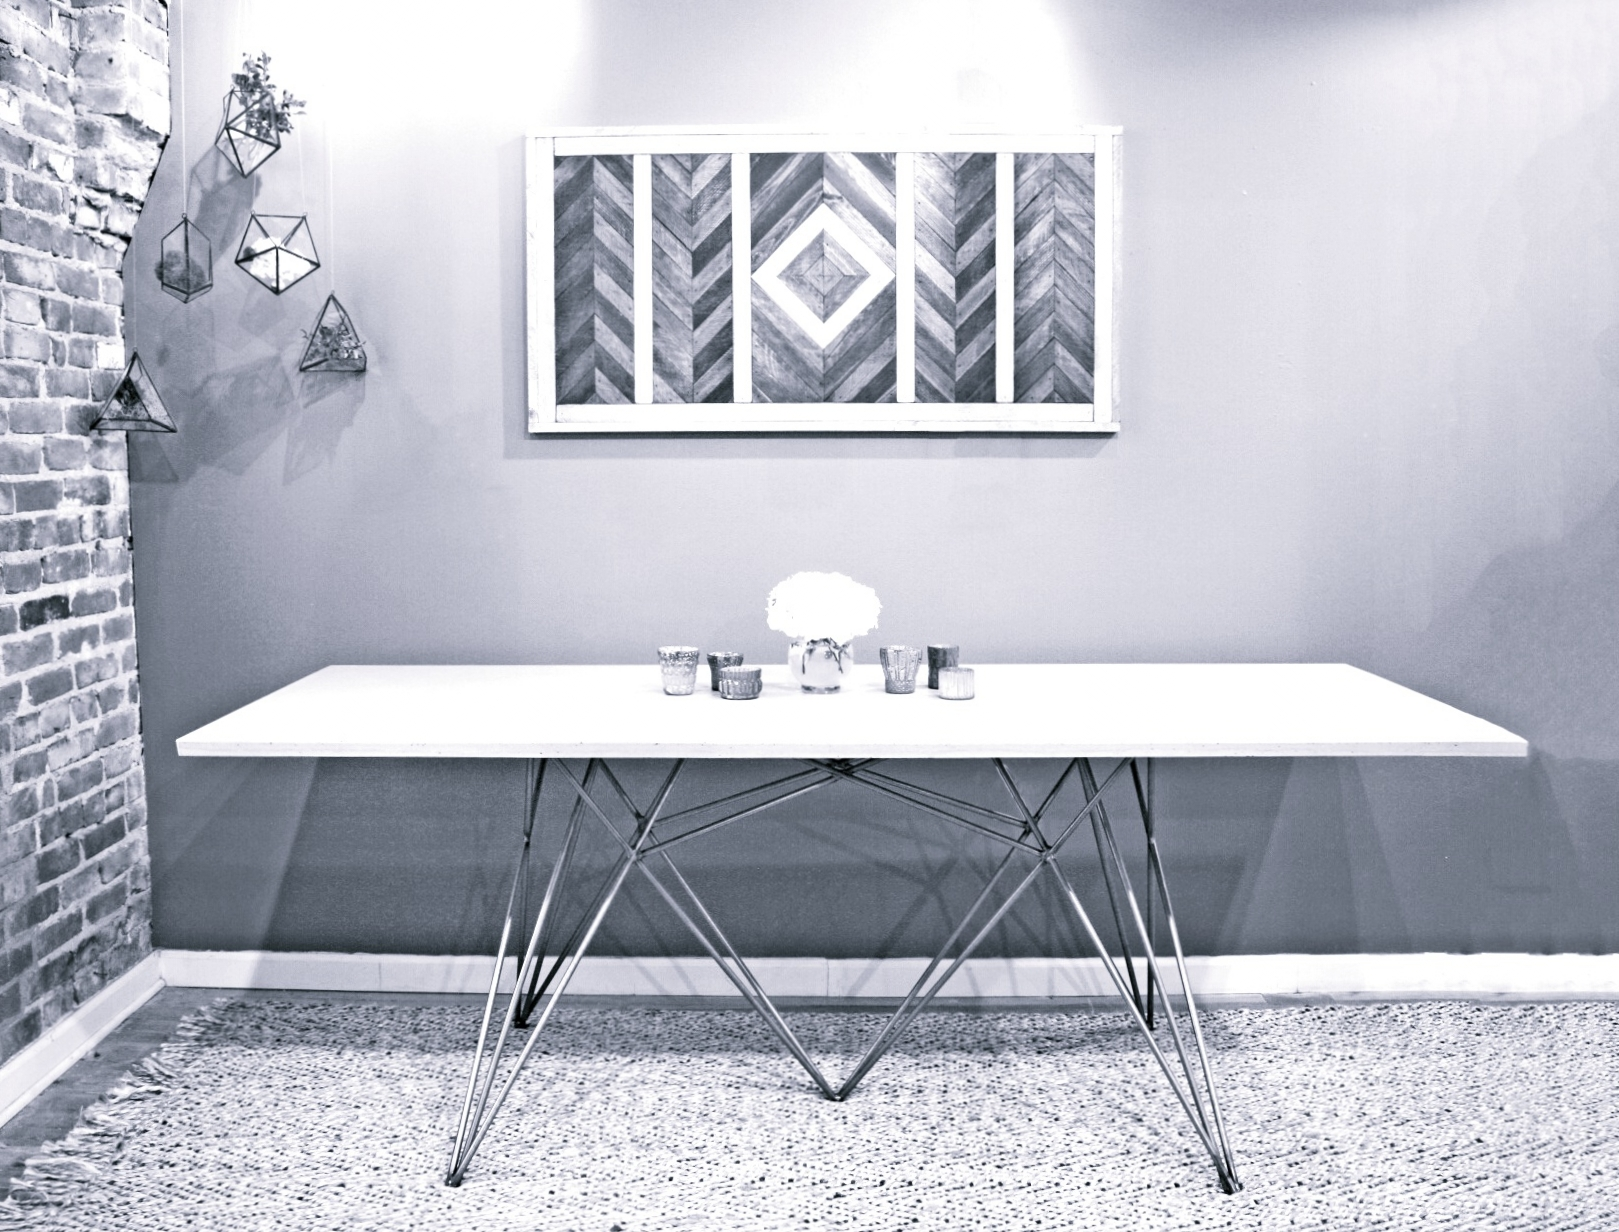 "52""x36"" modern concrete kitchen table 1/2"" navajo white concrete top. Base designed 1/8"" aluminum. Light and elegant."